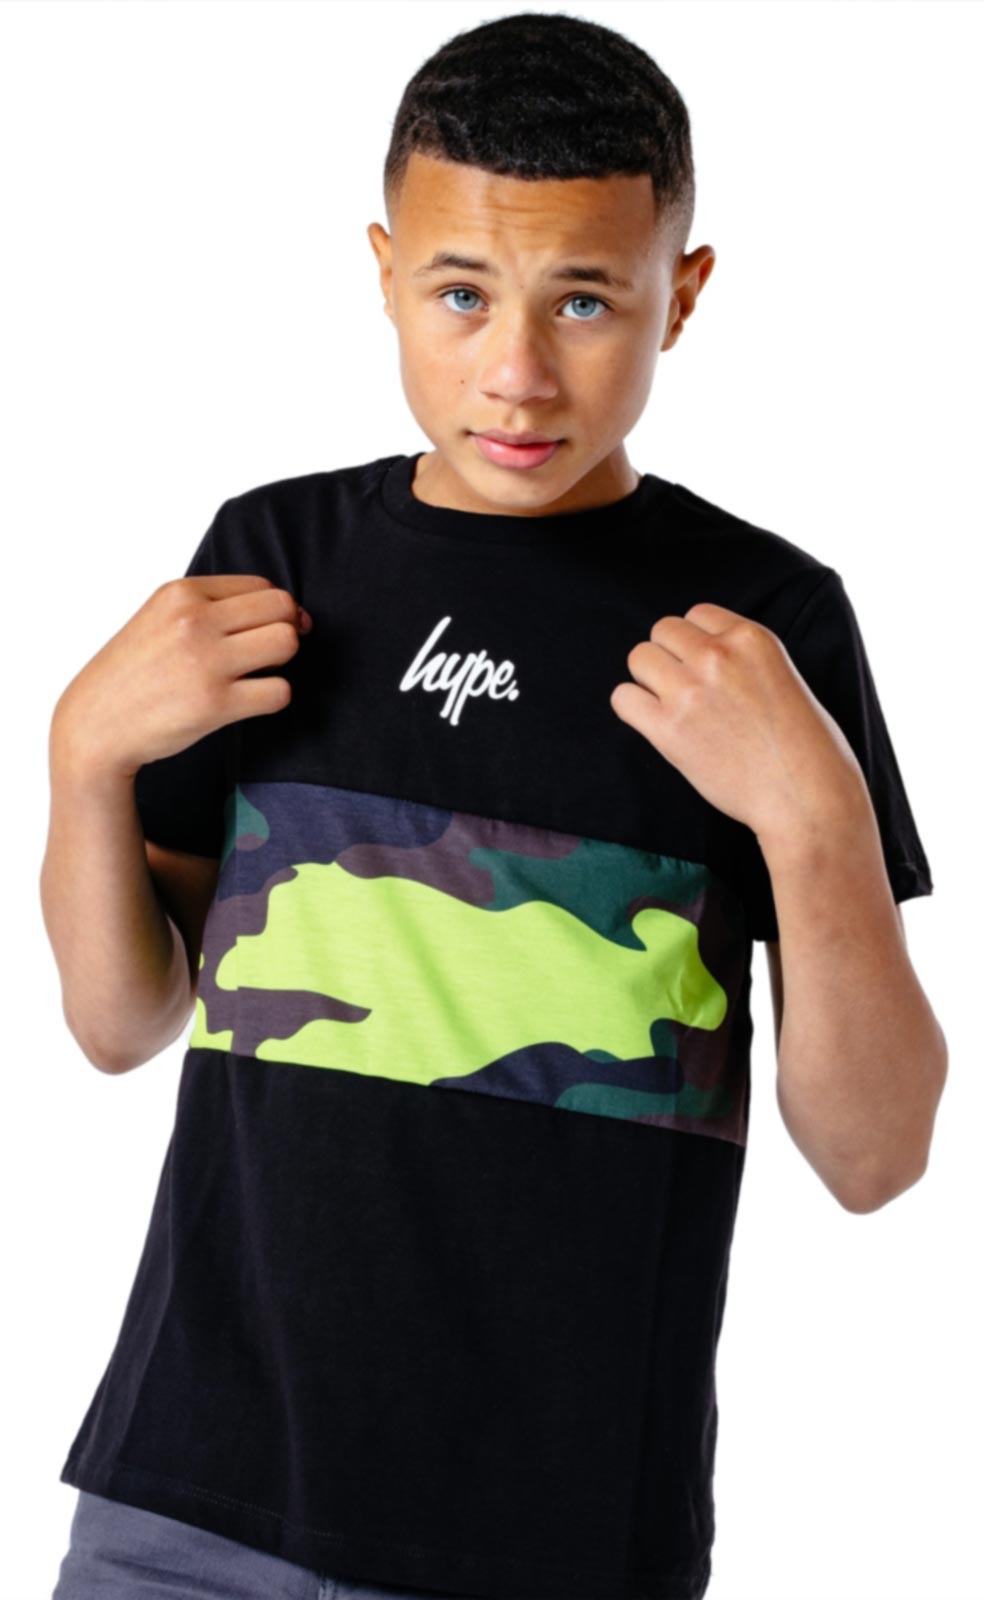 Hype Kids Neon Camo T-Shirt Black